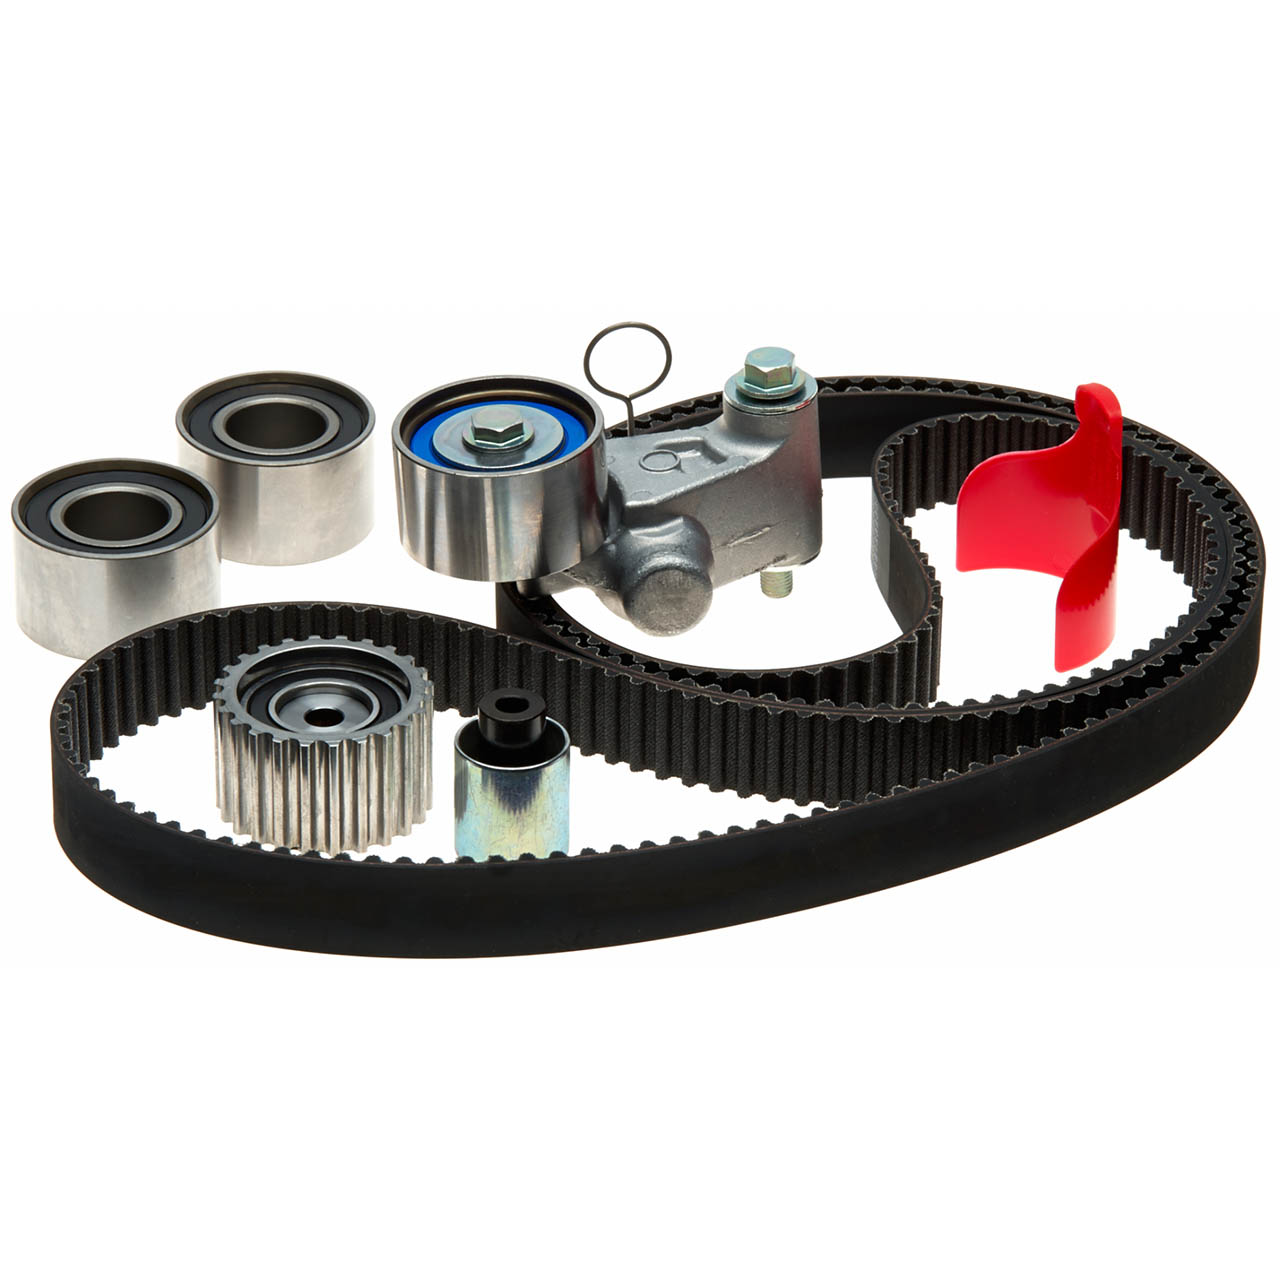 Gates Timing Belt Replacement Kit, 2002- Early 2003 WRX